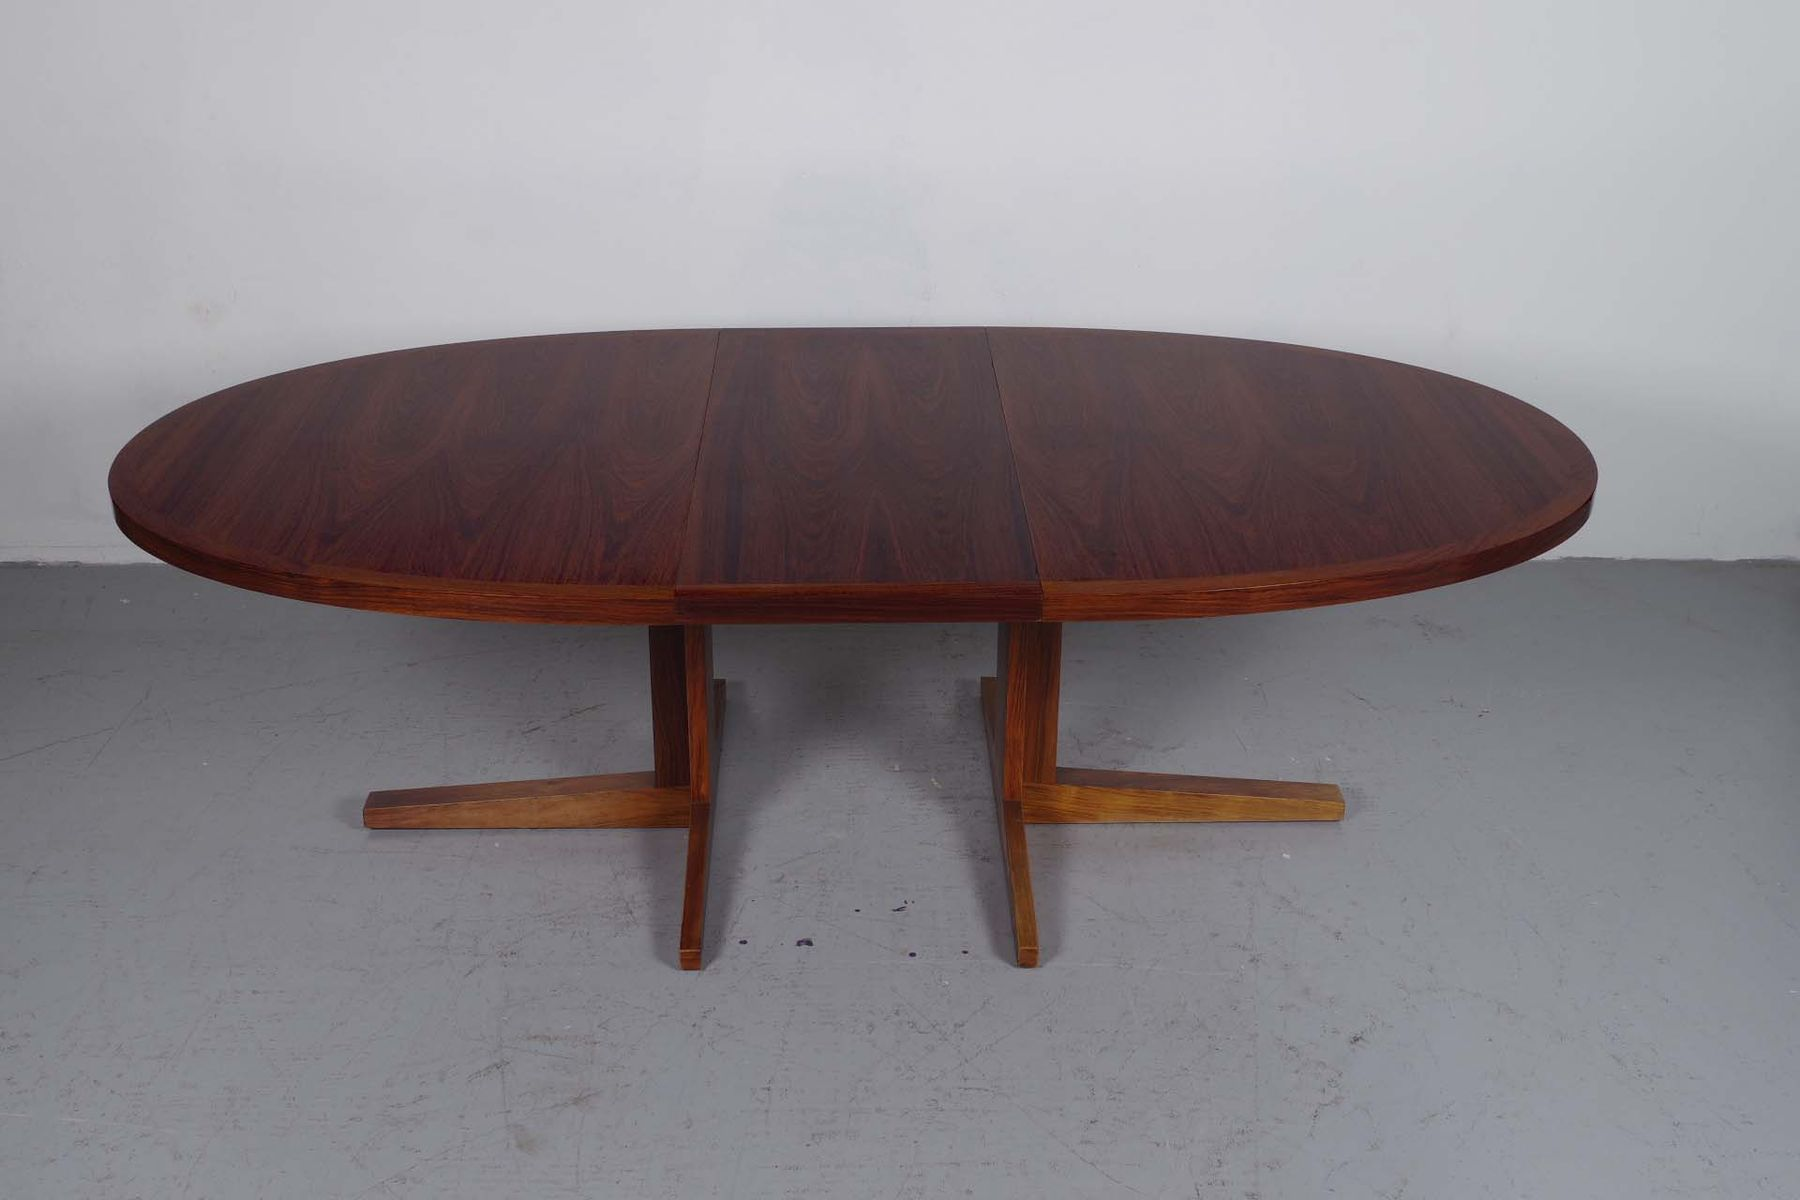 Vintage Extendable Dining Table Vintage Extendable Dining Table From Dyrlund For Sale At Pamono